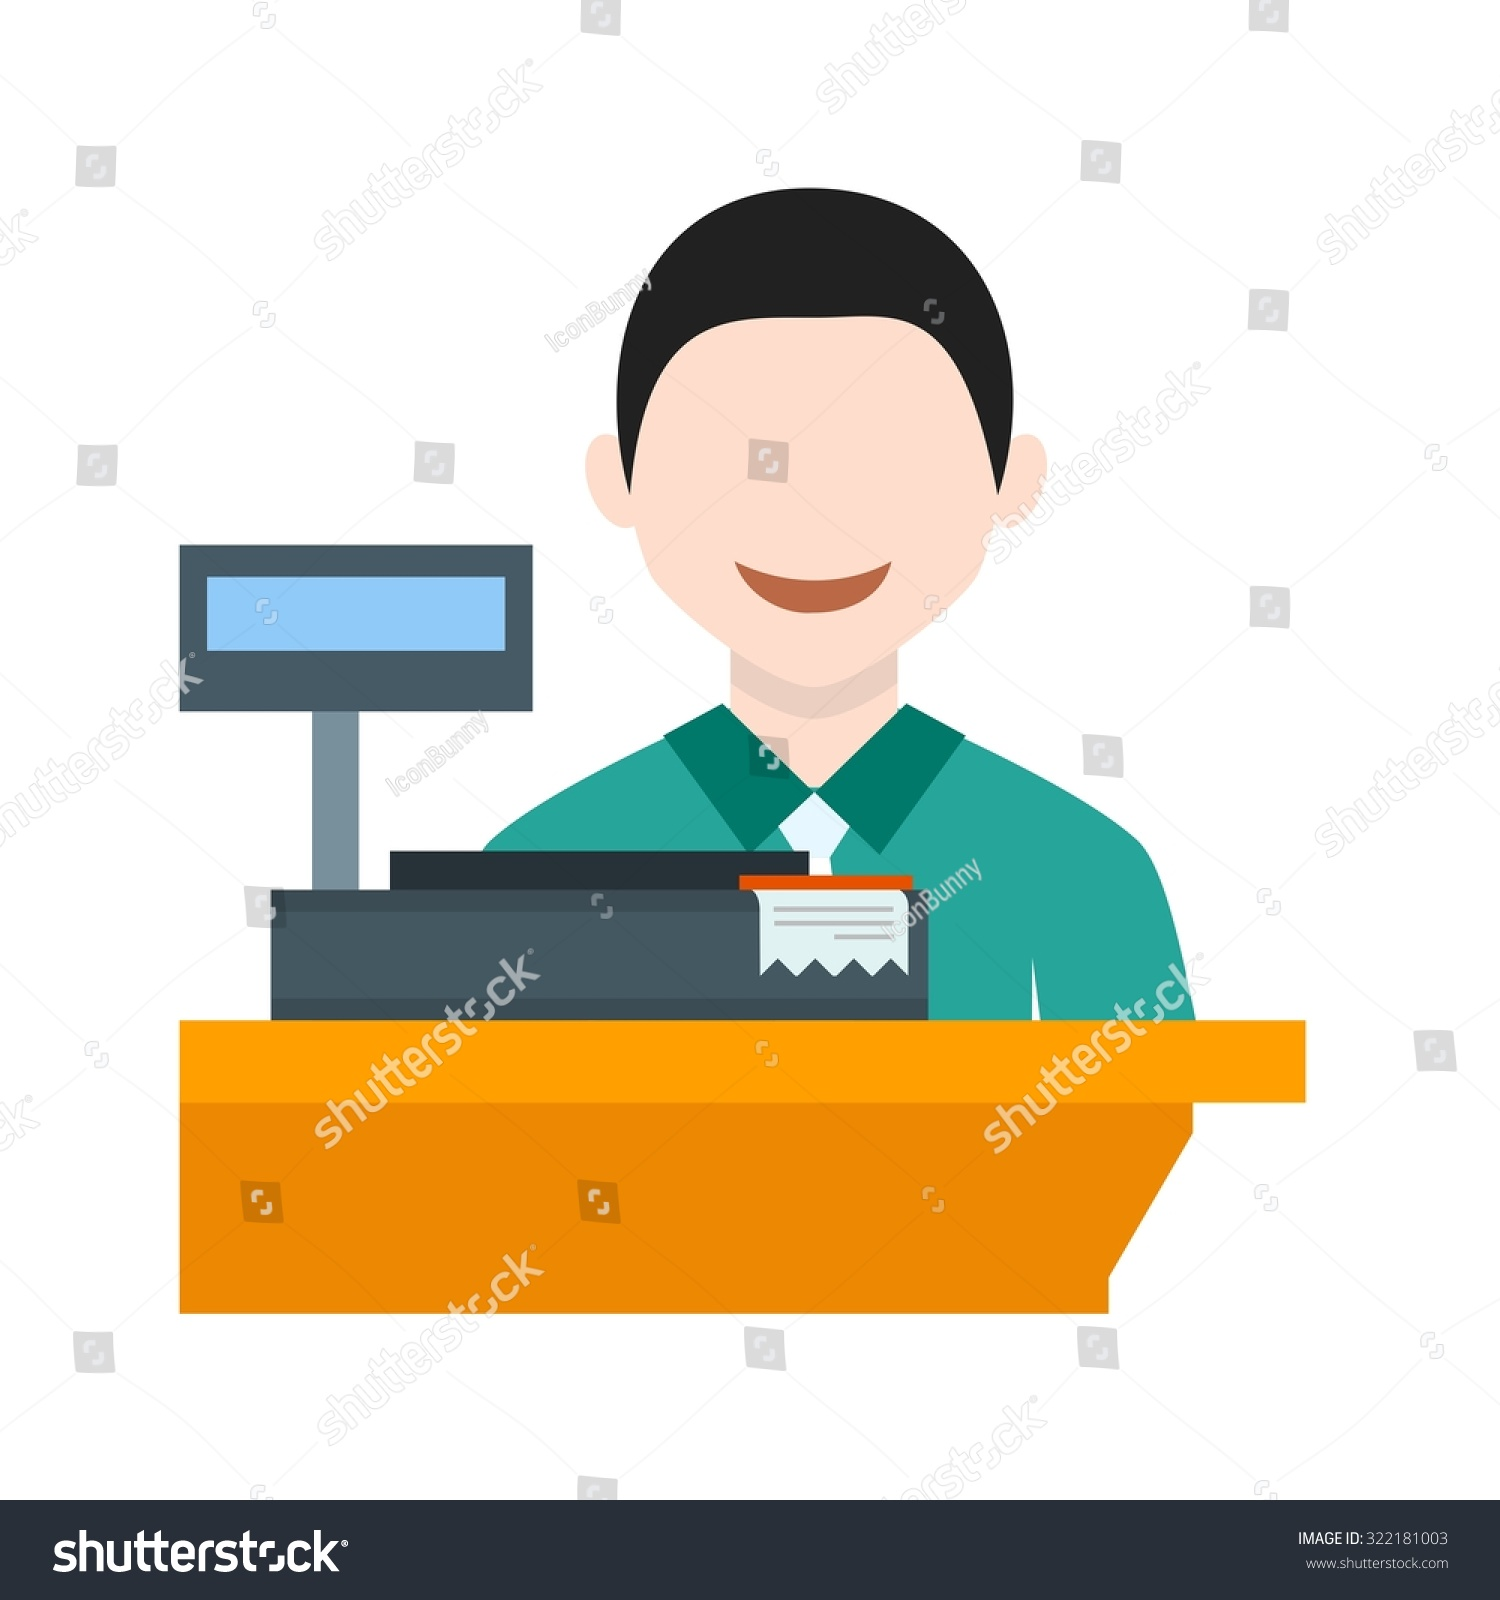 cashier bank cash icon vector image stock vector 322181003 cashier bank cash icon vector image can also be used for professionals